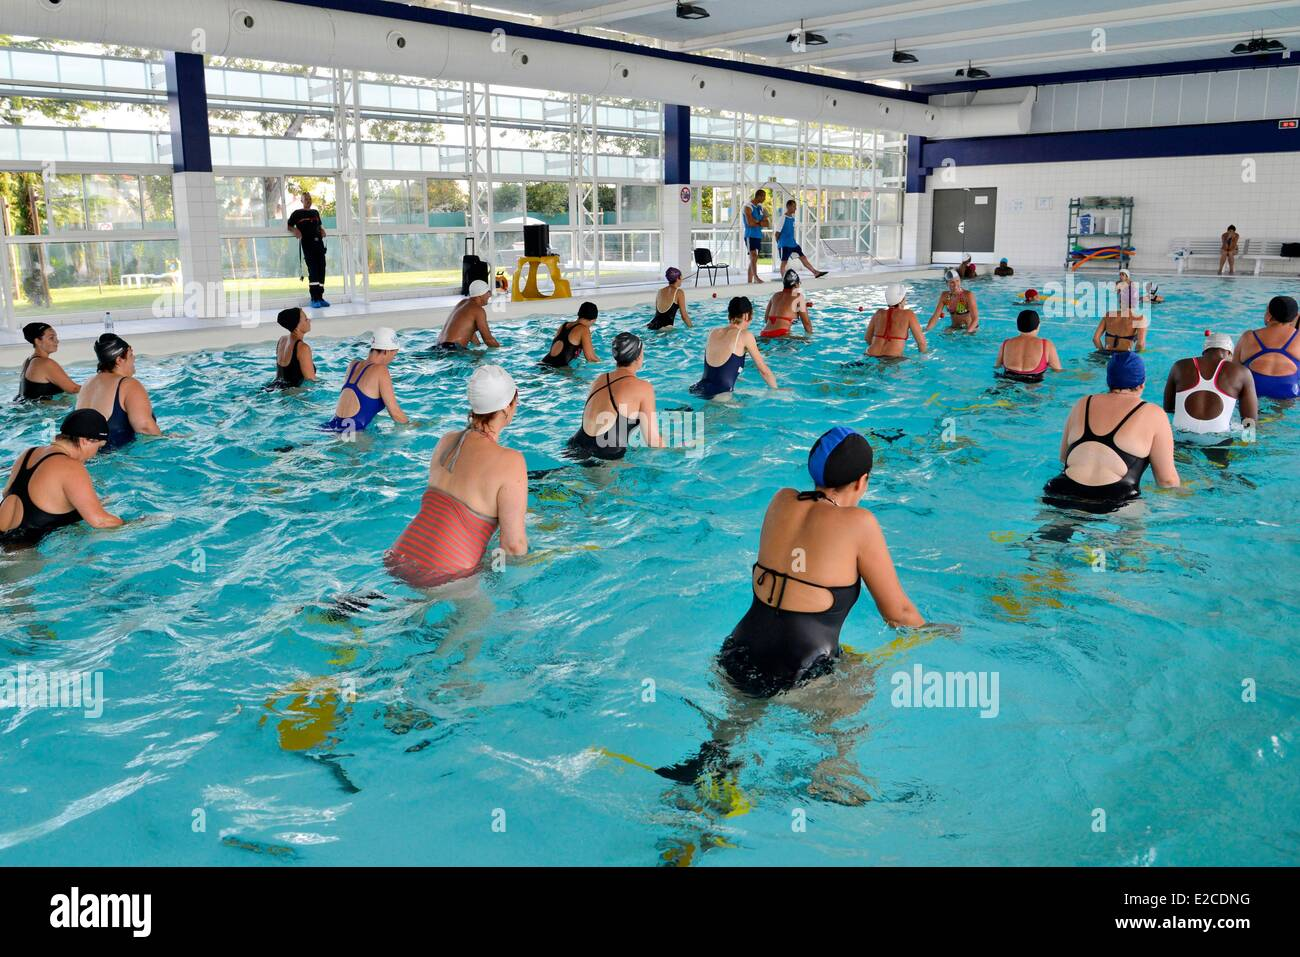 Aquabiking Photos Aquabiking Images Alamy